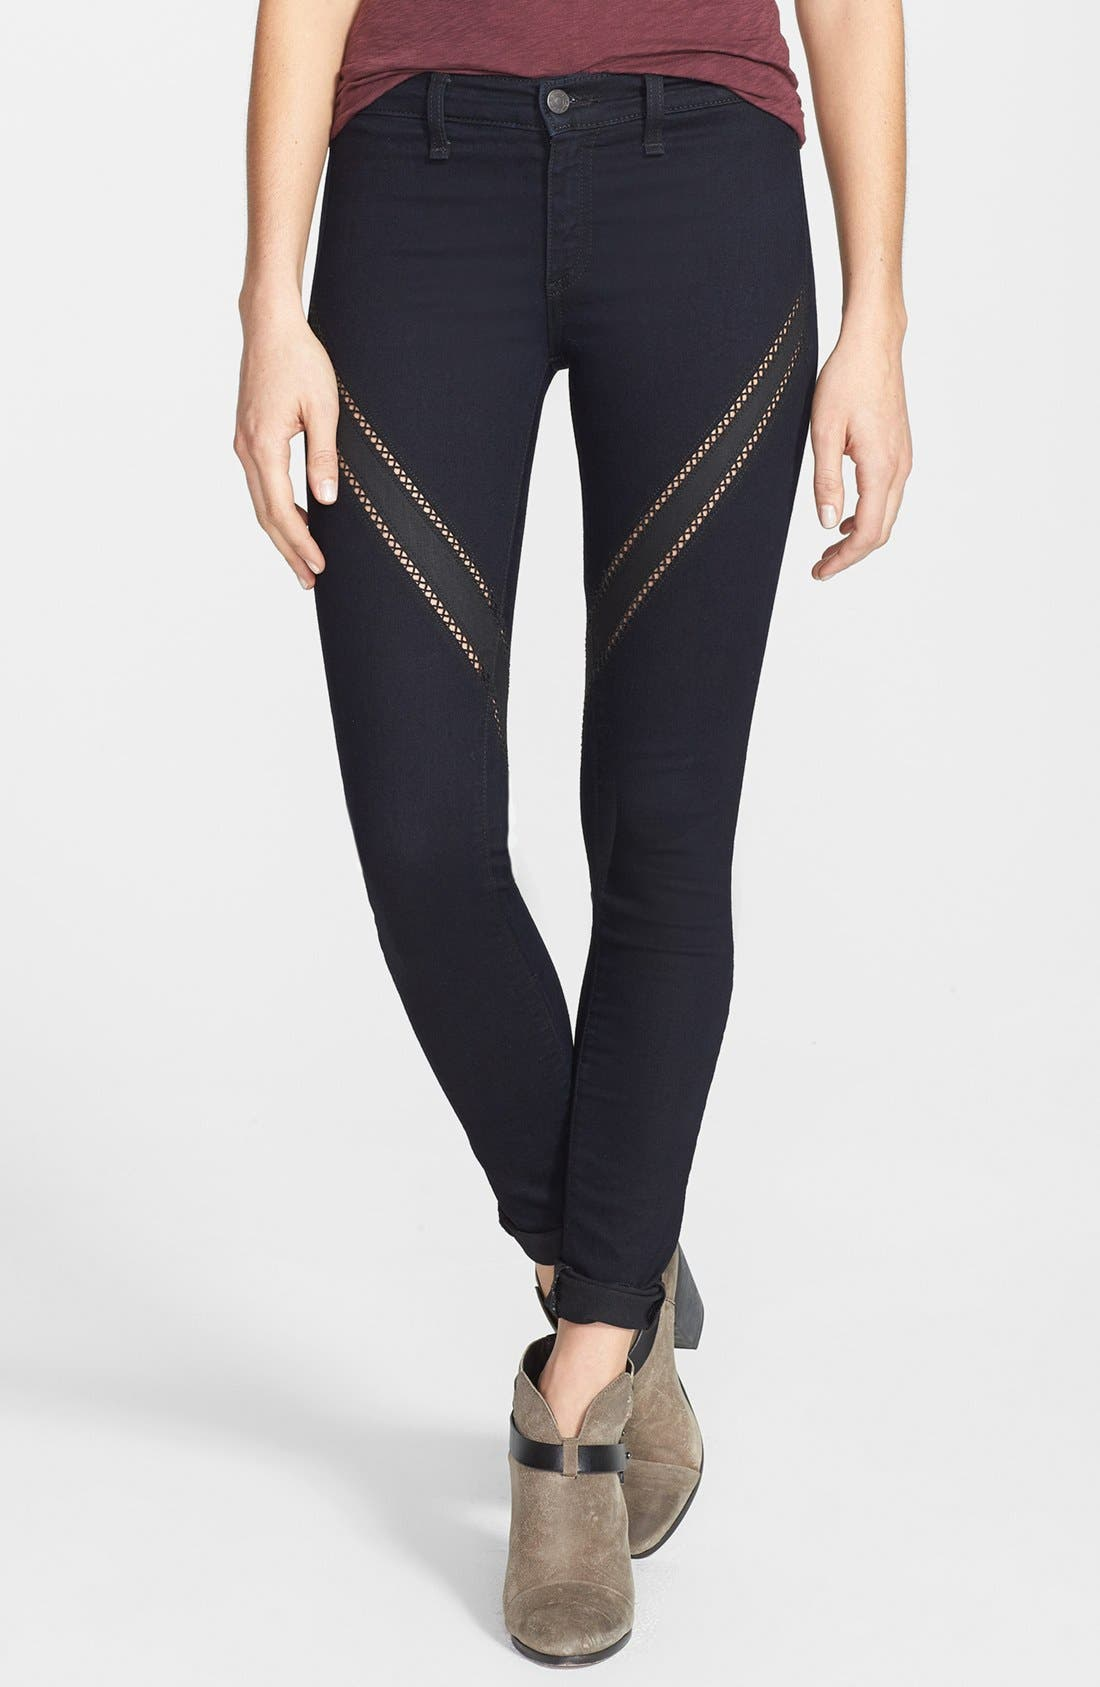 Alternate Image 1 Selected - rag & bone/JEAN Ribbon Trim Skinny Jeans (Midnight)